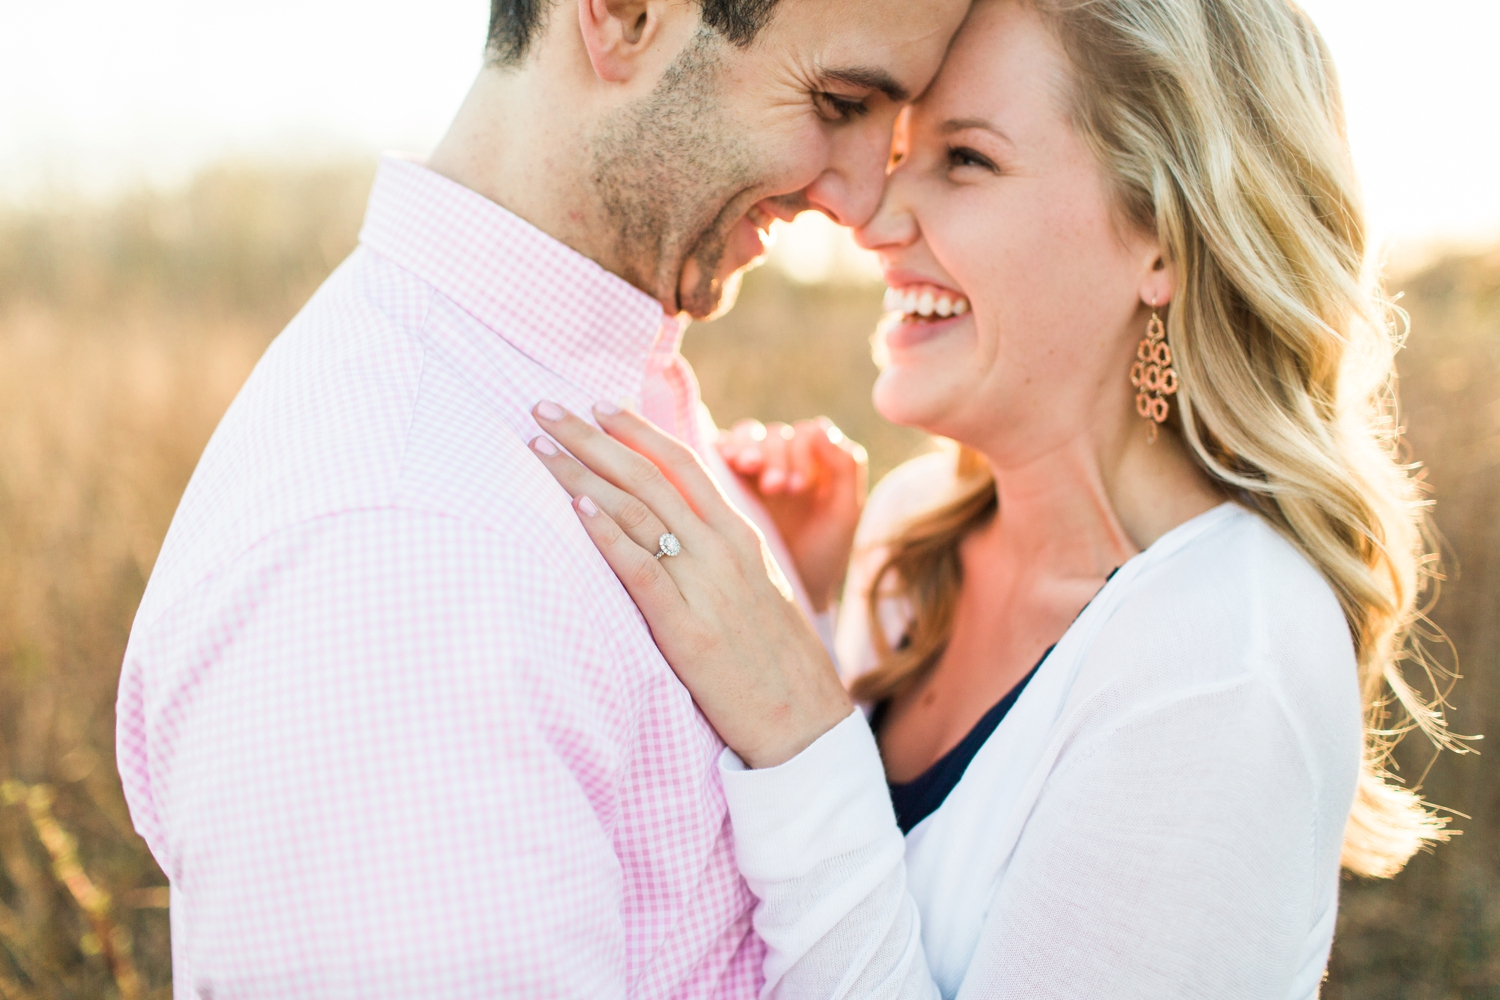 indianapolis_wedding_photographer_golden_hour_engagement_chloe_luka_photography_6130.jpg